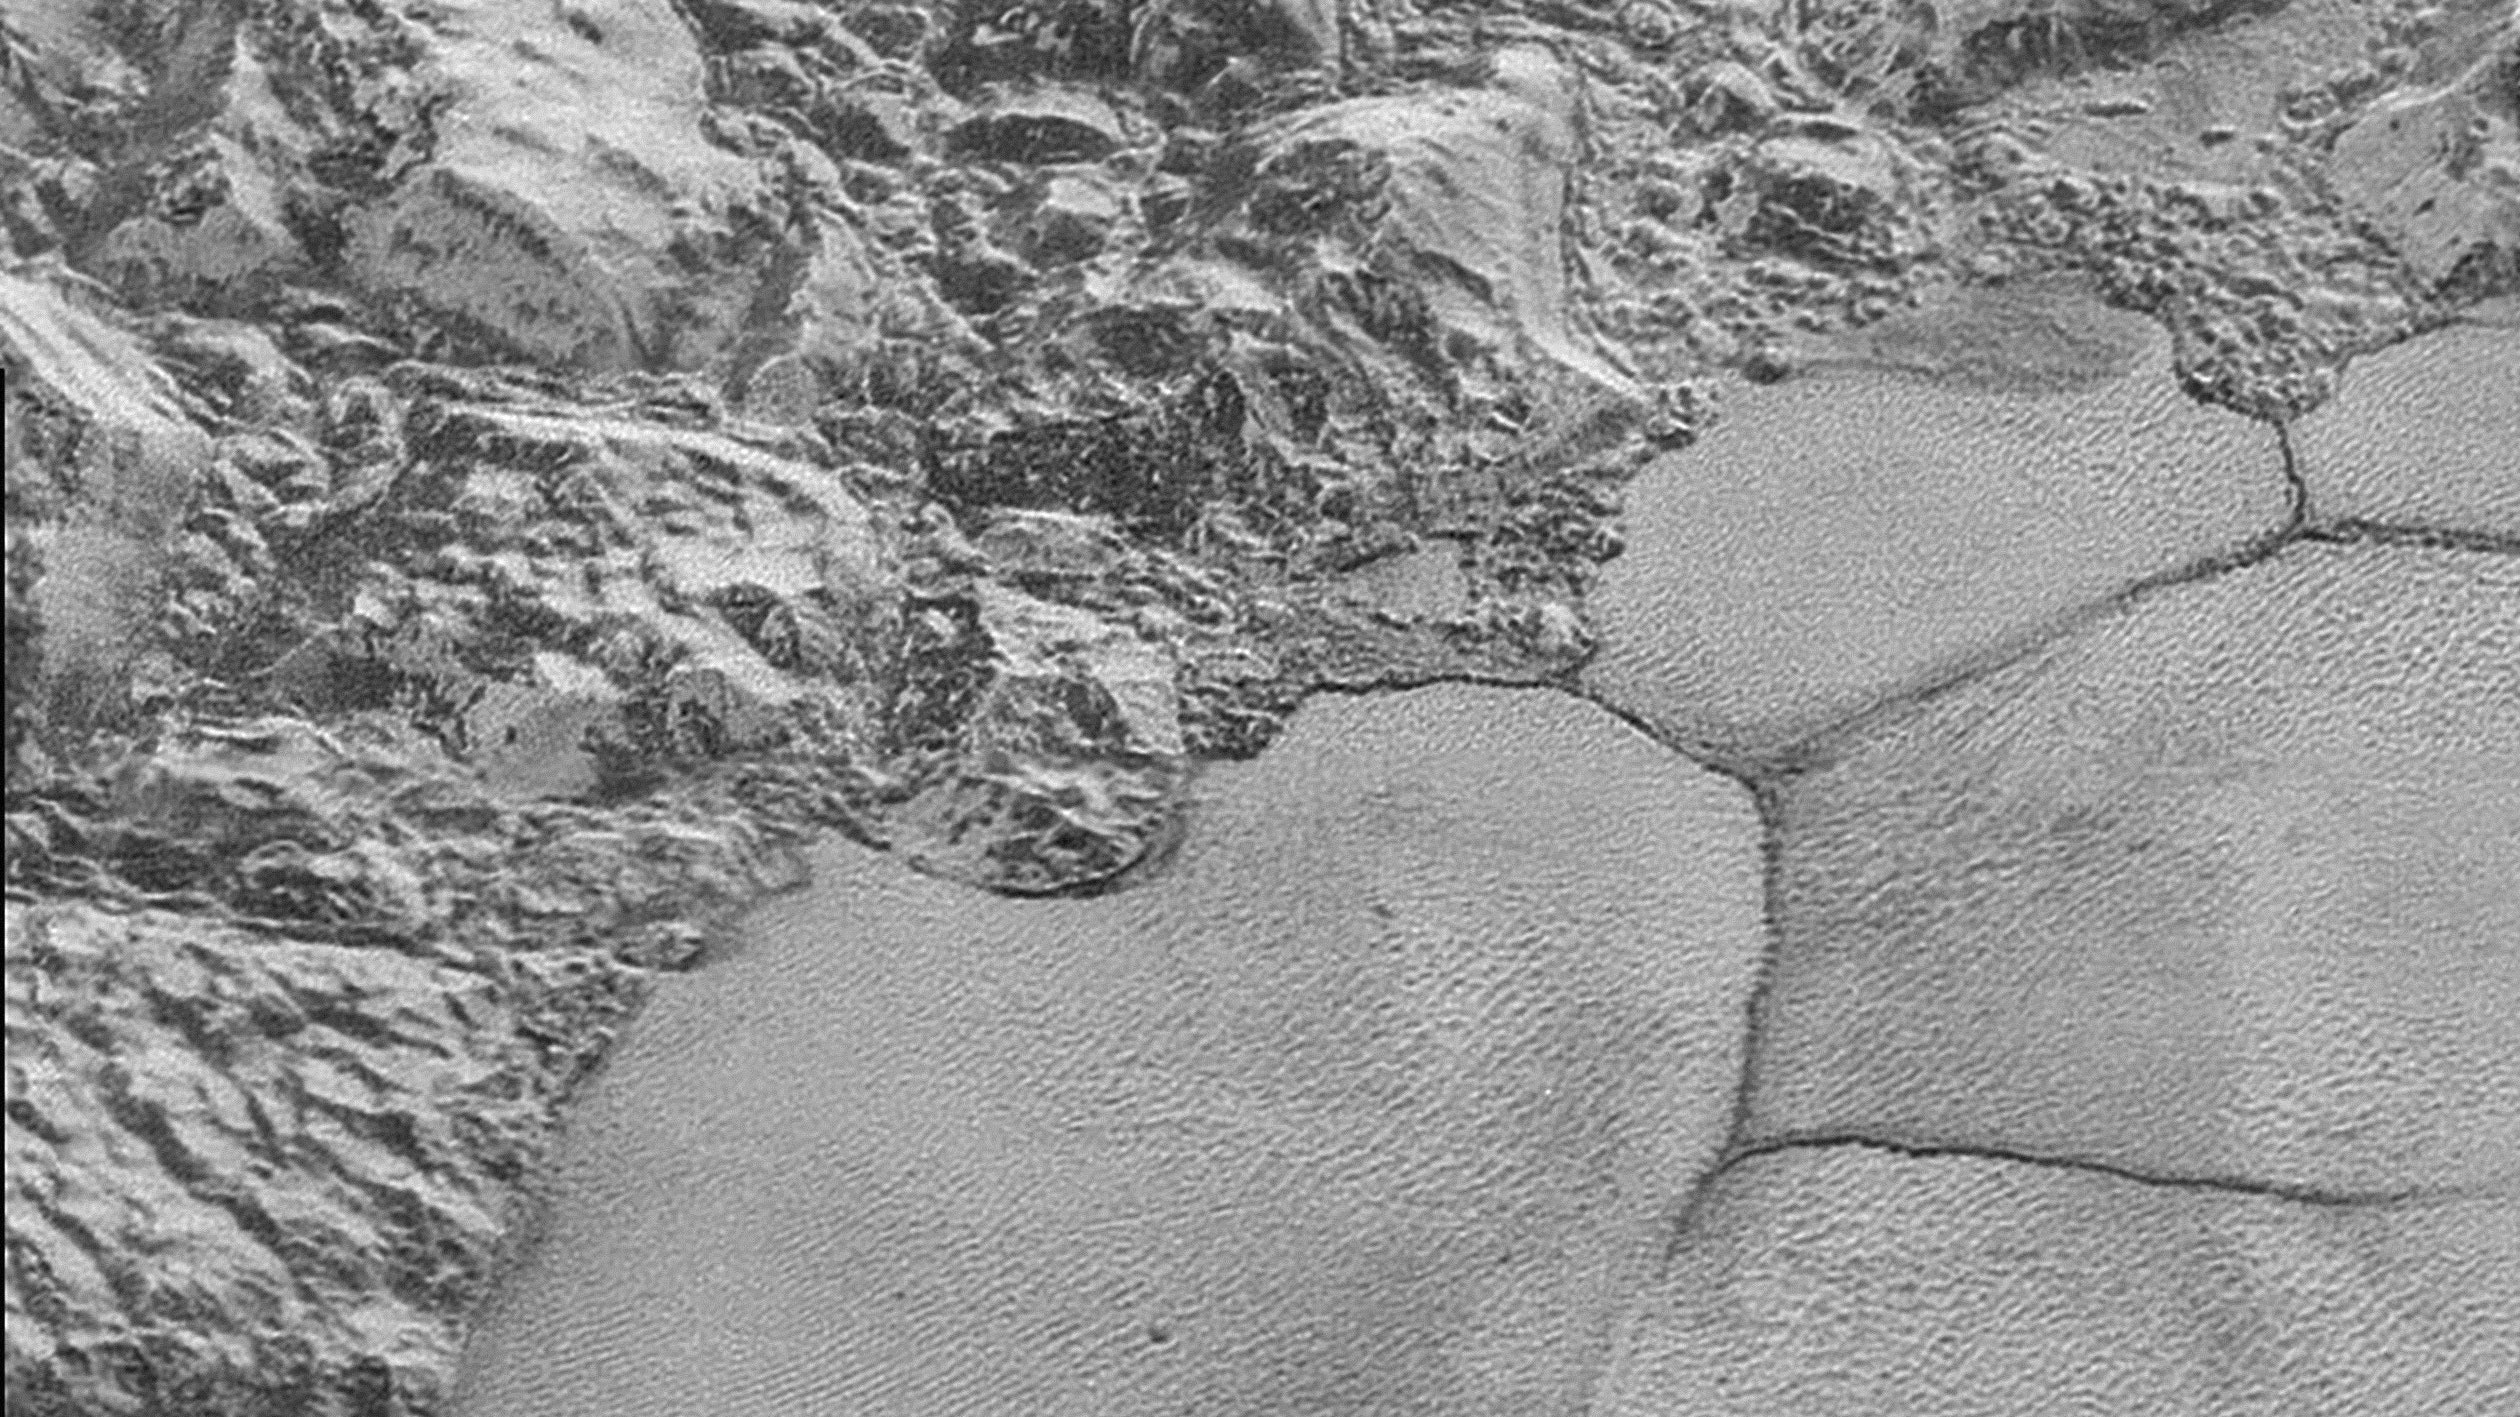 Scientists reveal the secrets behind Pluto's dunes